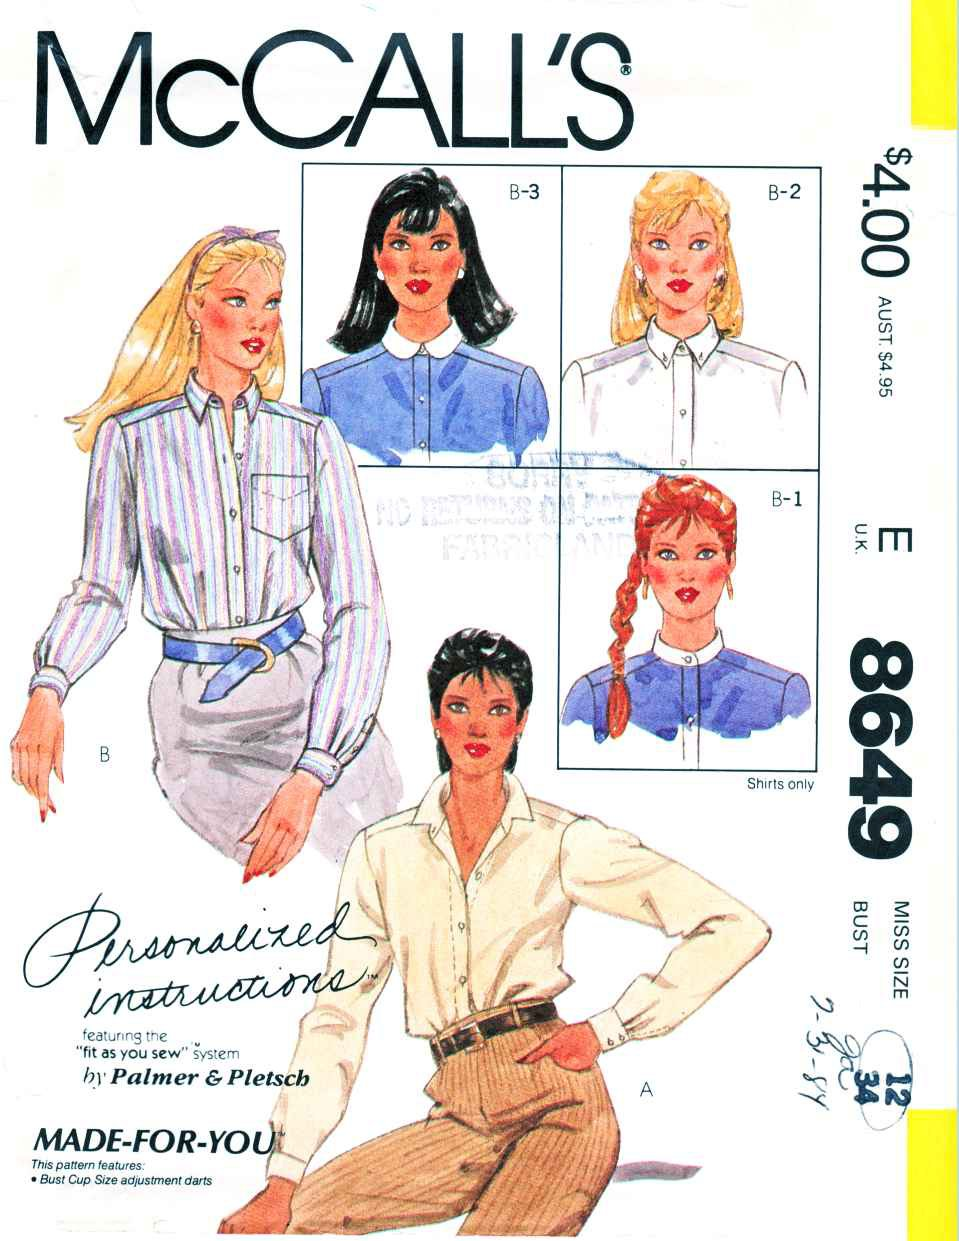 McCall's Sewing Pattern 8649 M8649 Misses Sizes 14 Long Sleeve Front Button Shirt Collar Options